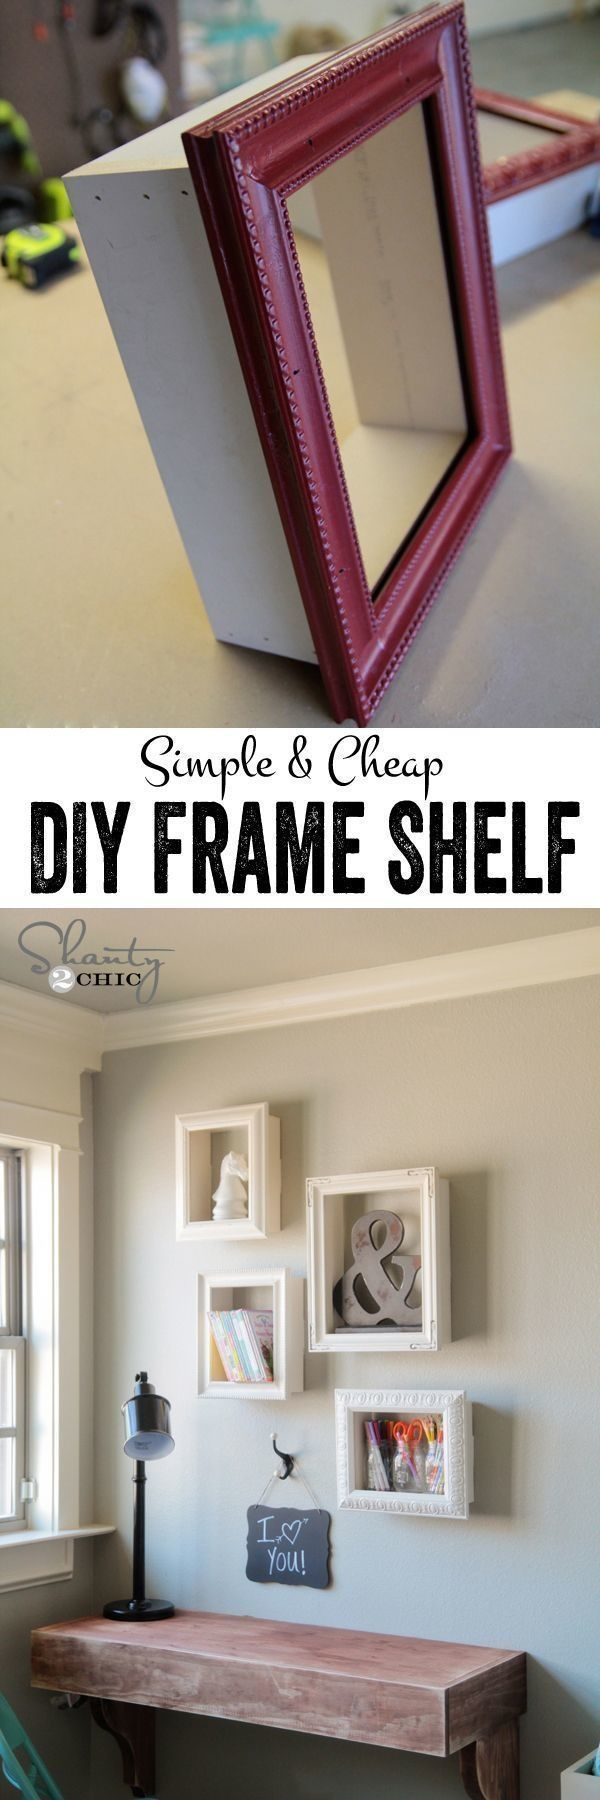 17 best ideas about picture frame shelves on pinterest shadow box picture frames diy frame and shadow box shelves